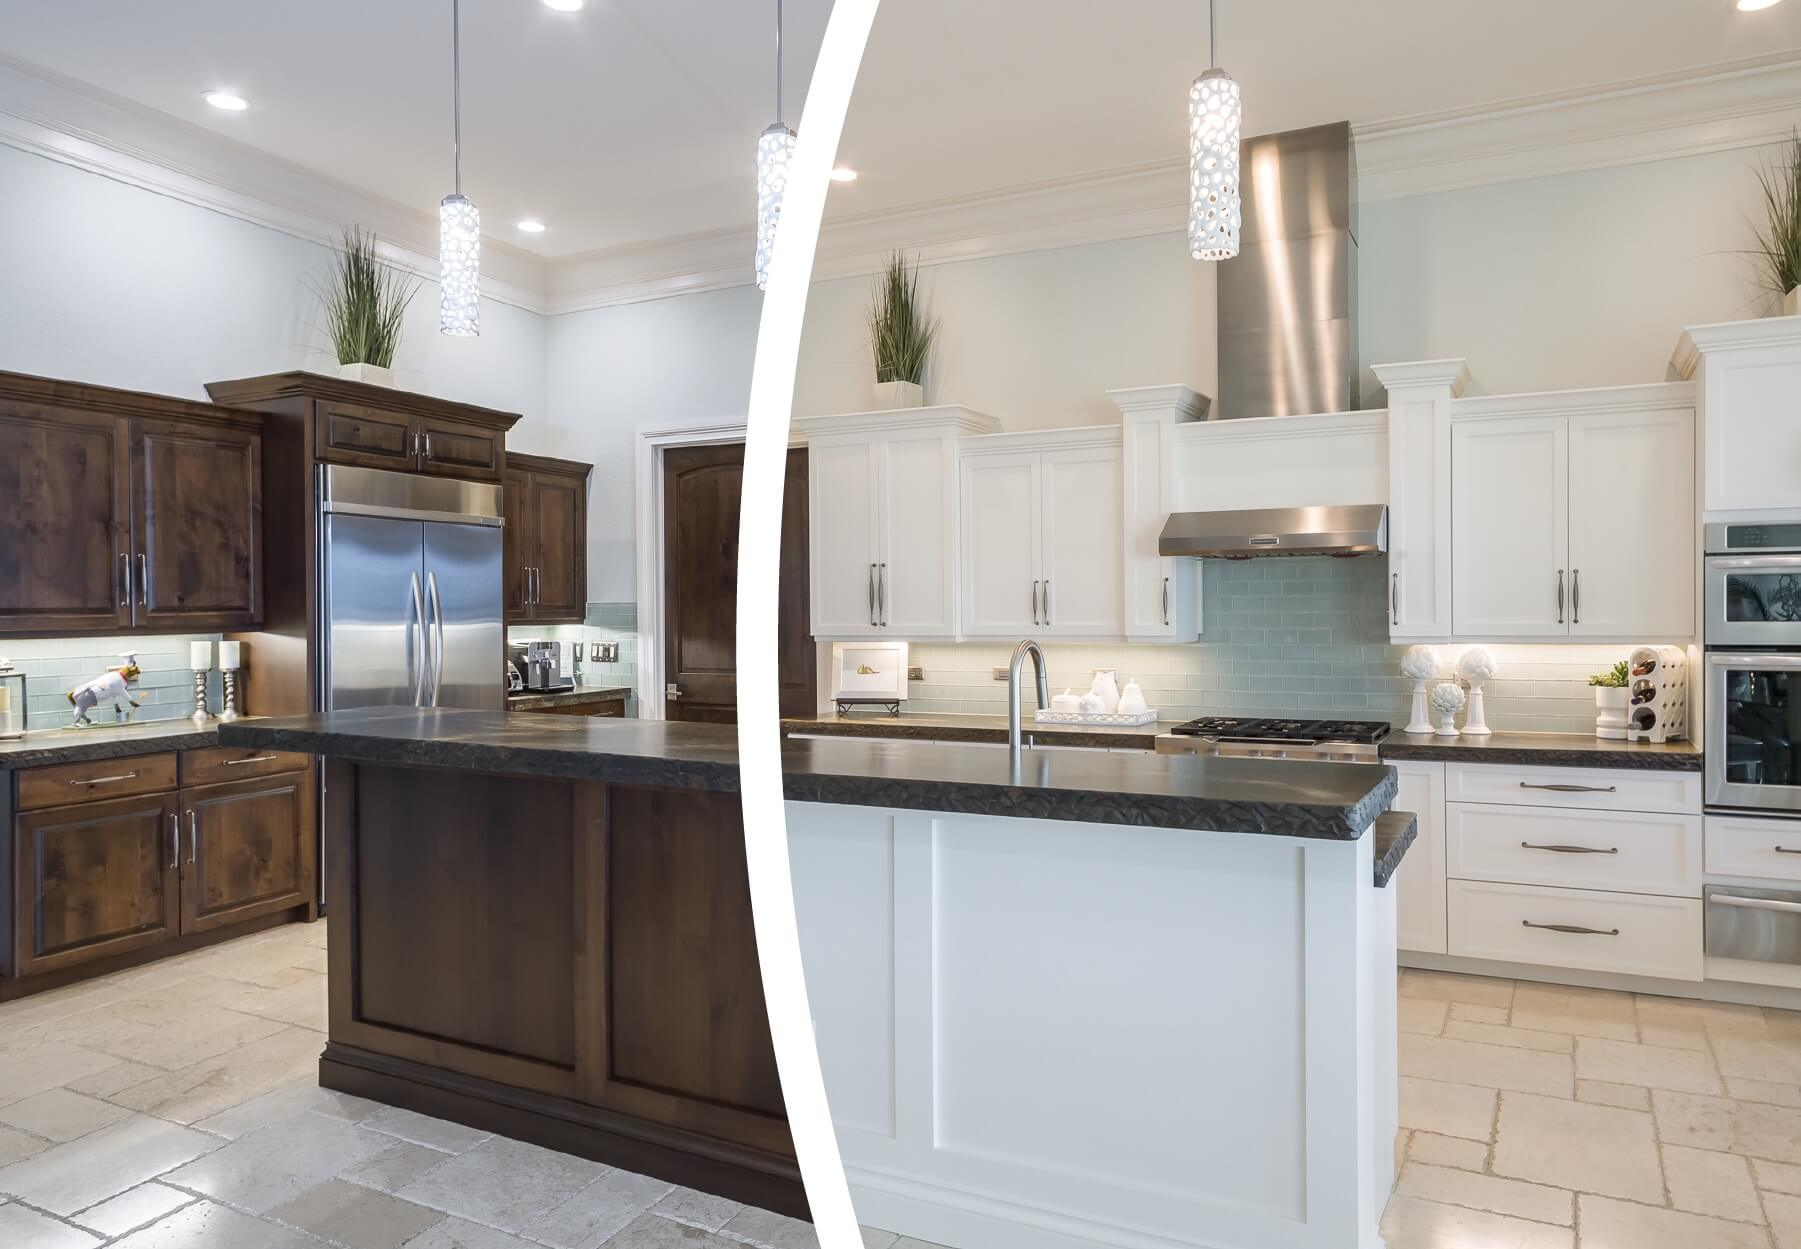 Cabinet Refinishing-Grand Prairie TX Professional Painting Contractors-We offer Residential & Commercial Painting, Interior Painting, Exterior Painting, Primer Painting, Industrial Painting, Professional Painters, Institutional Painters, and more.